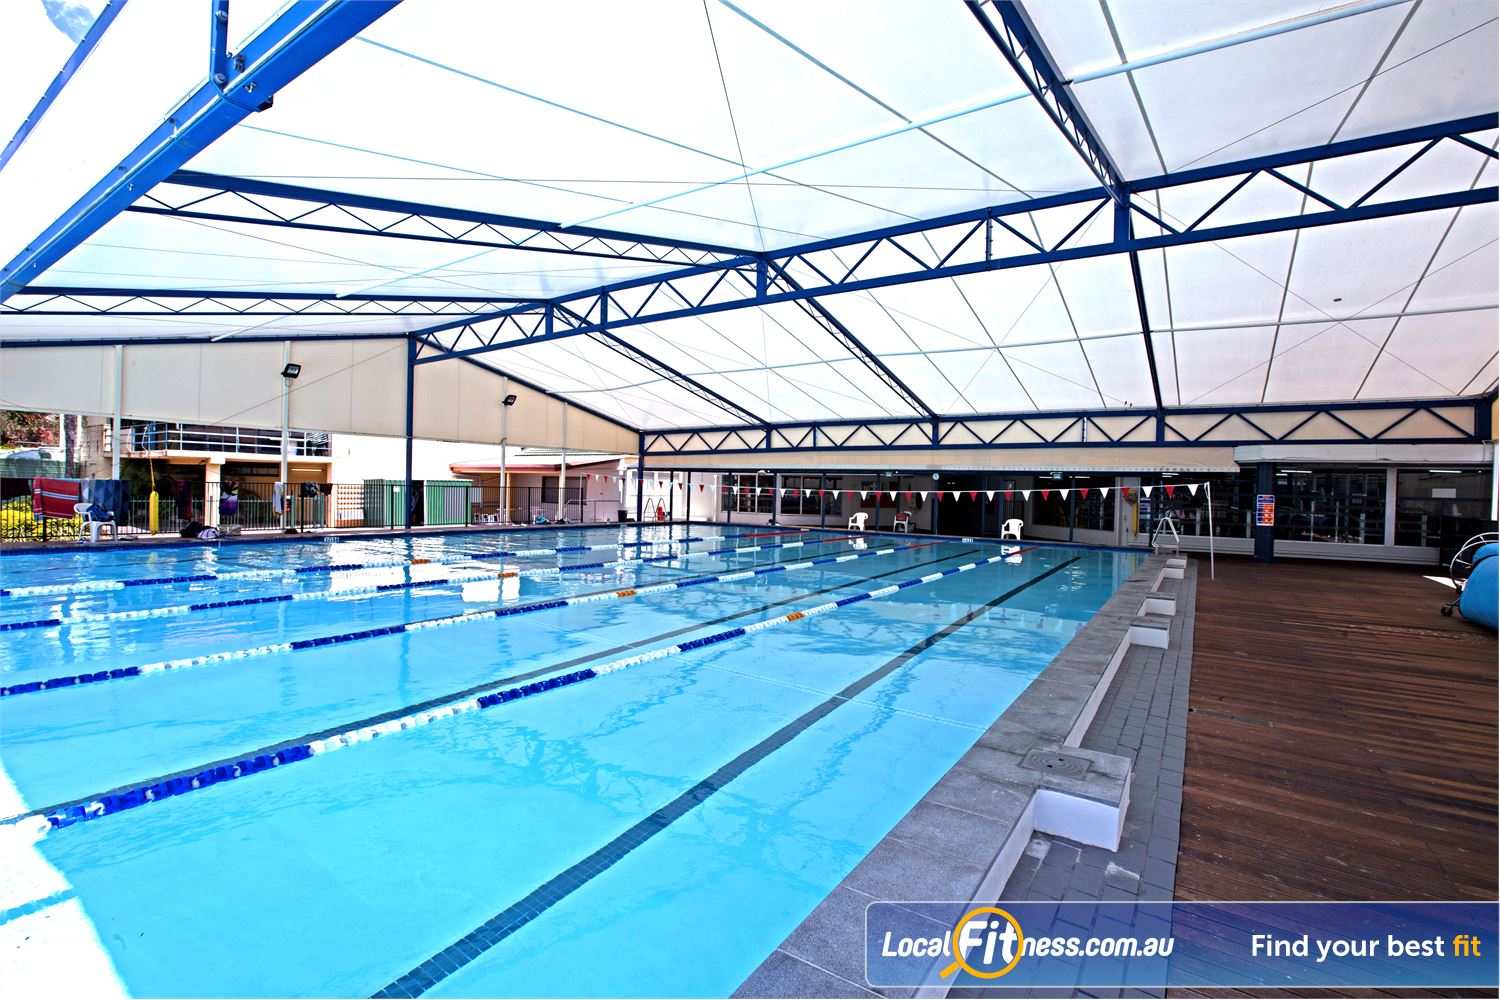 Goodlife Health Clubs Near Lota Our Alex Hill swimming pool is great for lap lane swimming all year round.